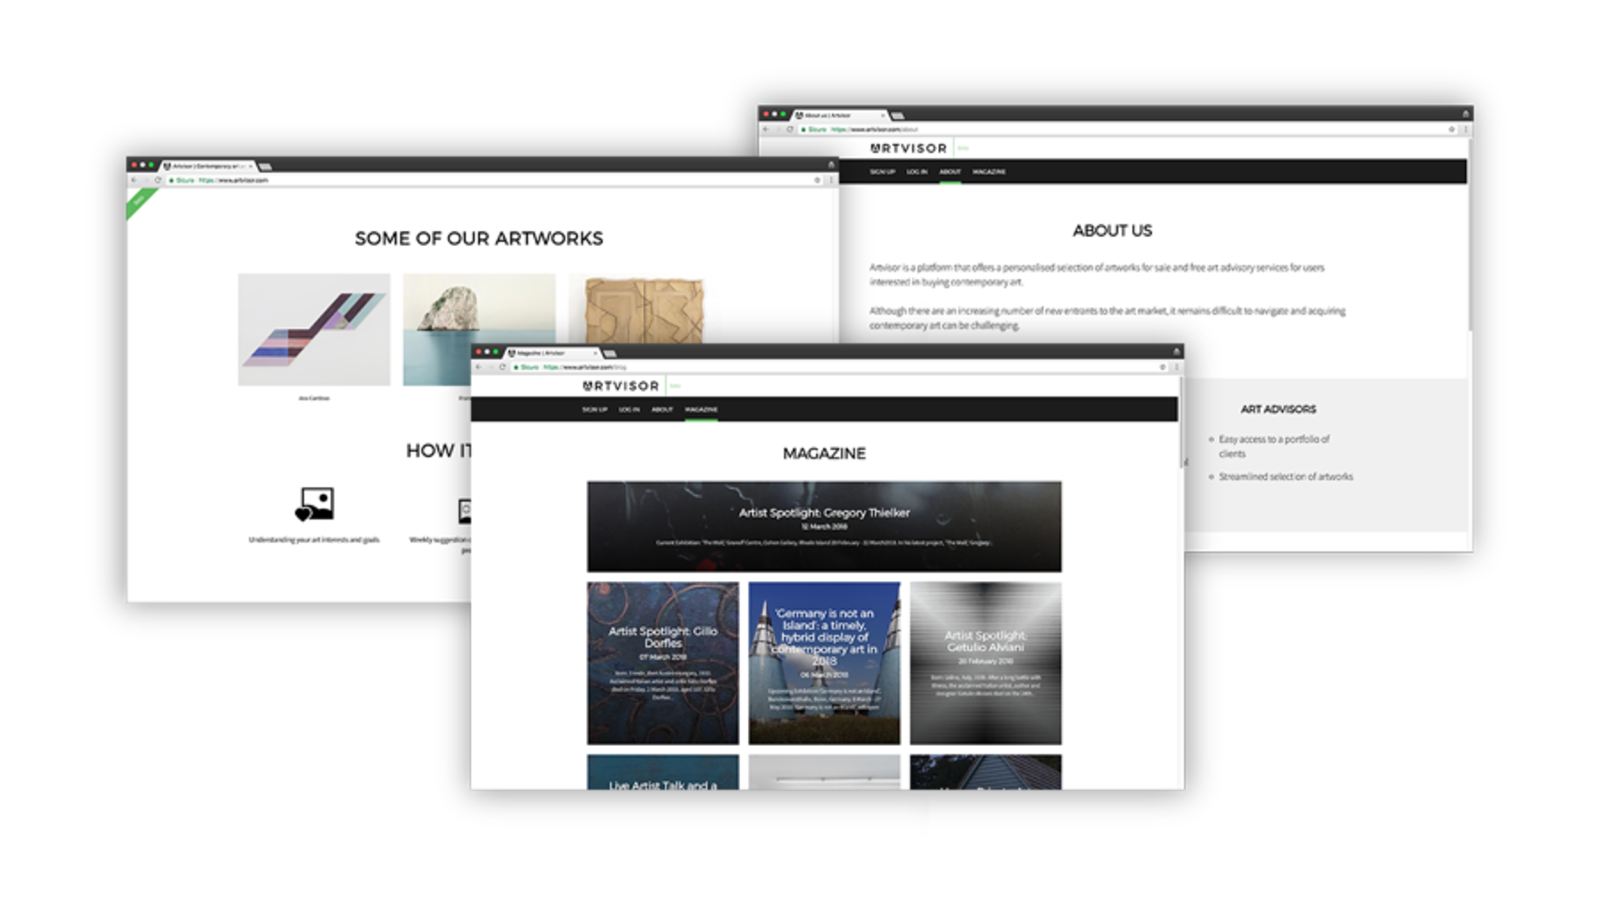 example screenshot of the pages of the Art Advisor site